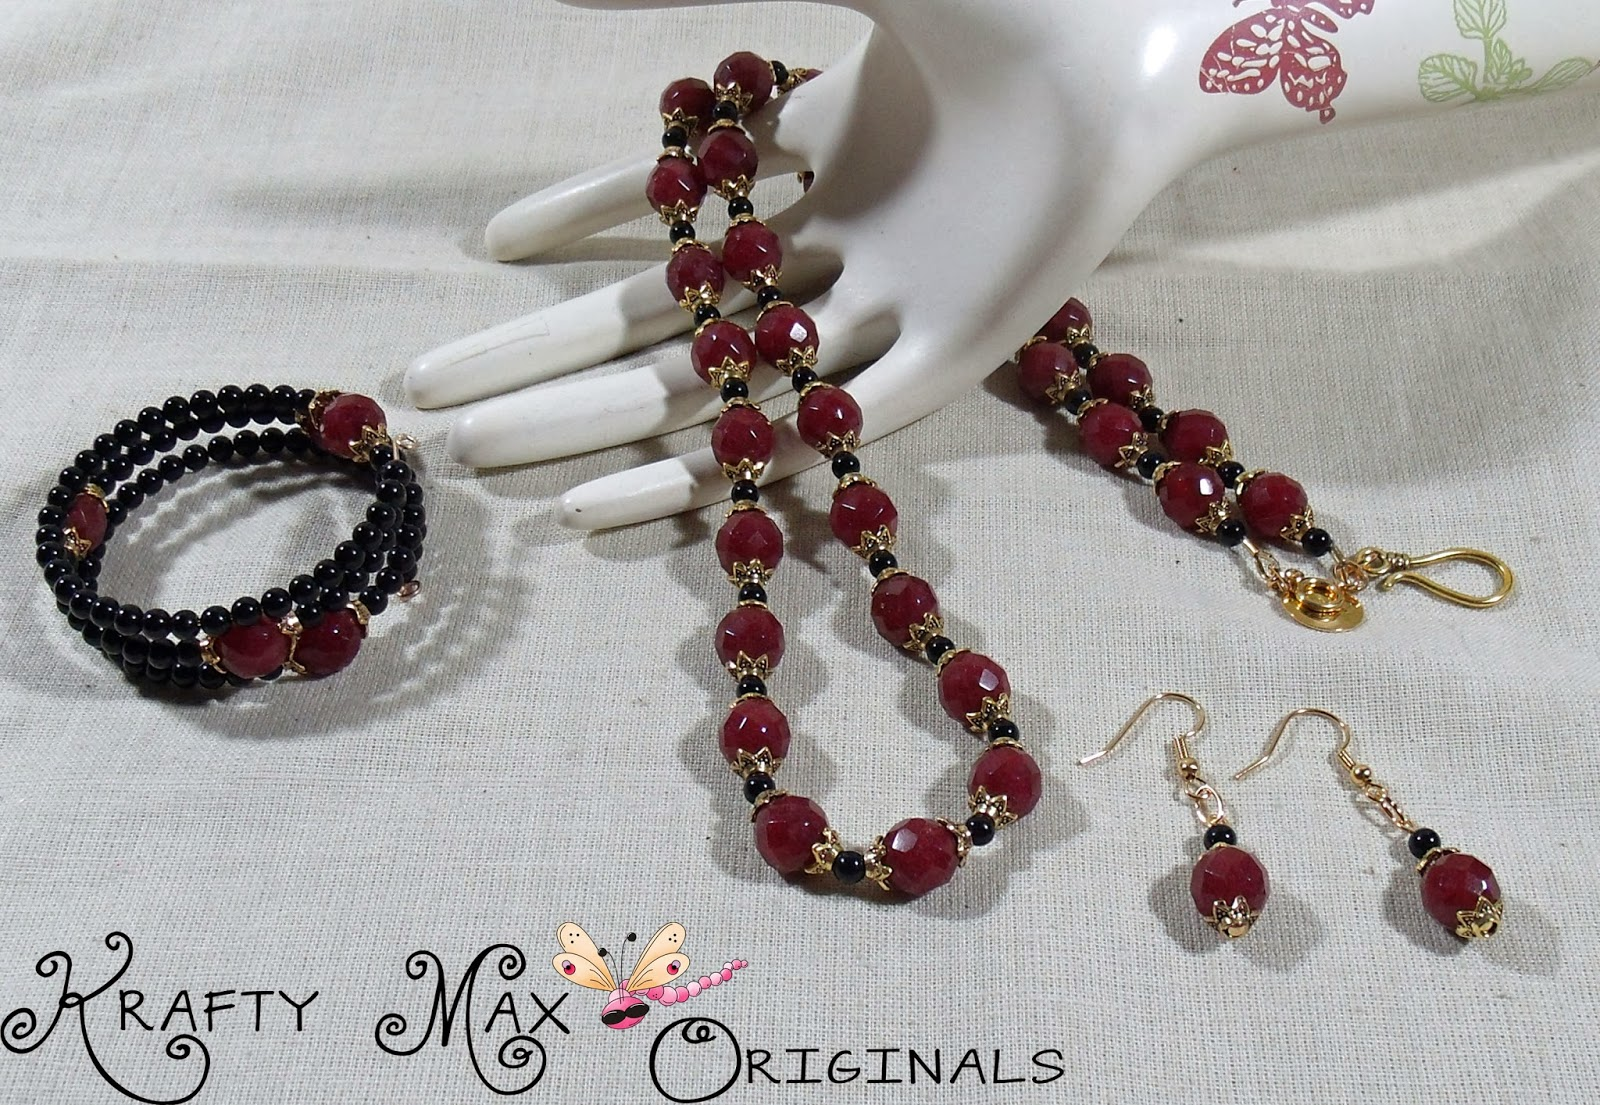 http://www.lajuliet.com/index.php/2013-01-04-15-21-51/ad/gold,93/exclusive-red-black-and-gold-3-piece-necklace-set-a-krafty-max-original-design,152